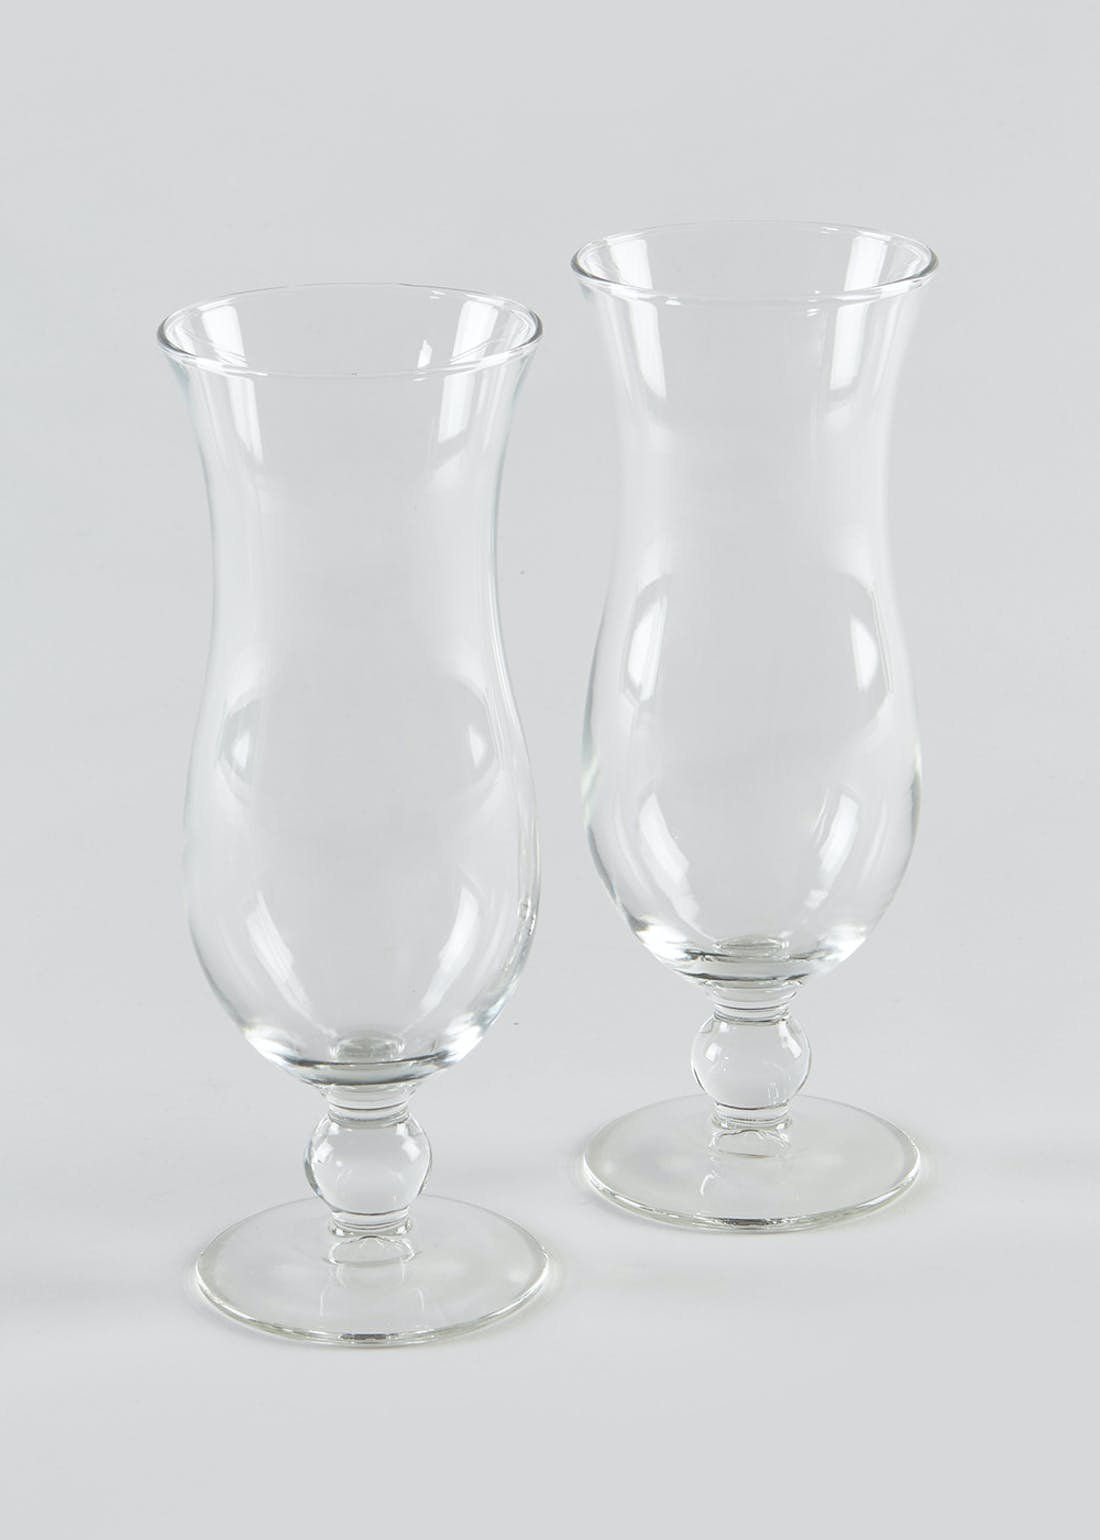 2 Pack Hurricane Glasses (20cm x 6cm)